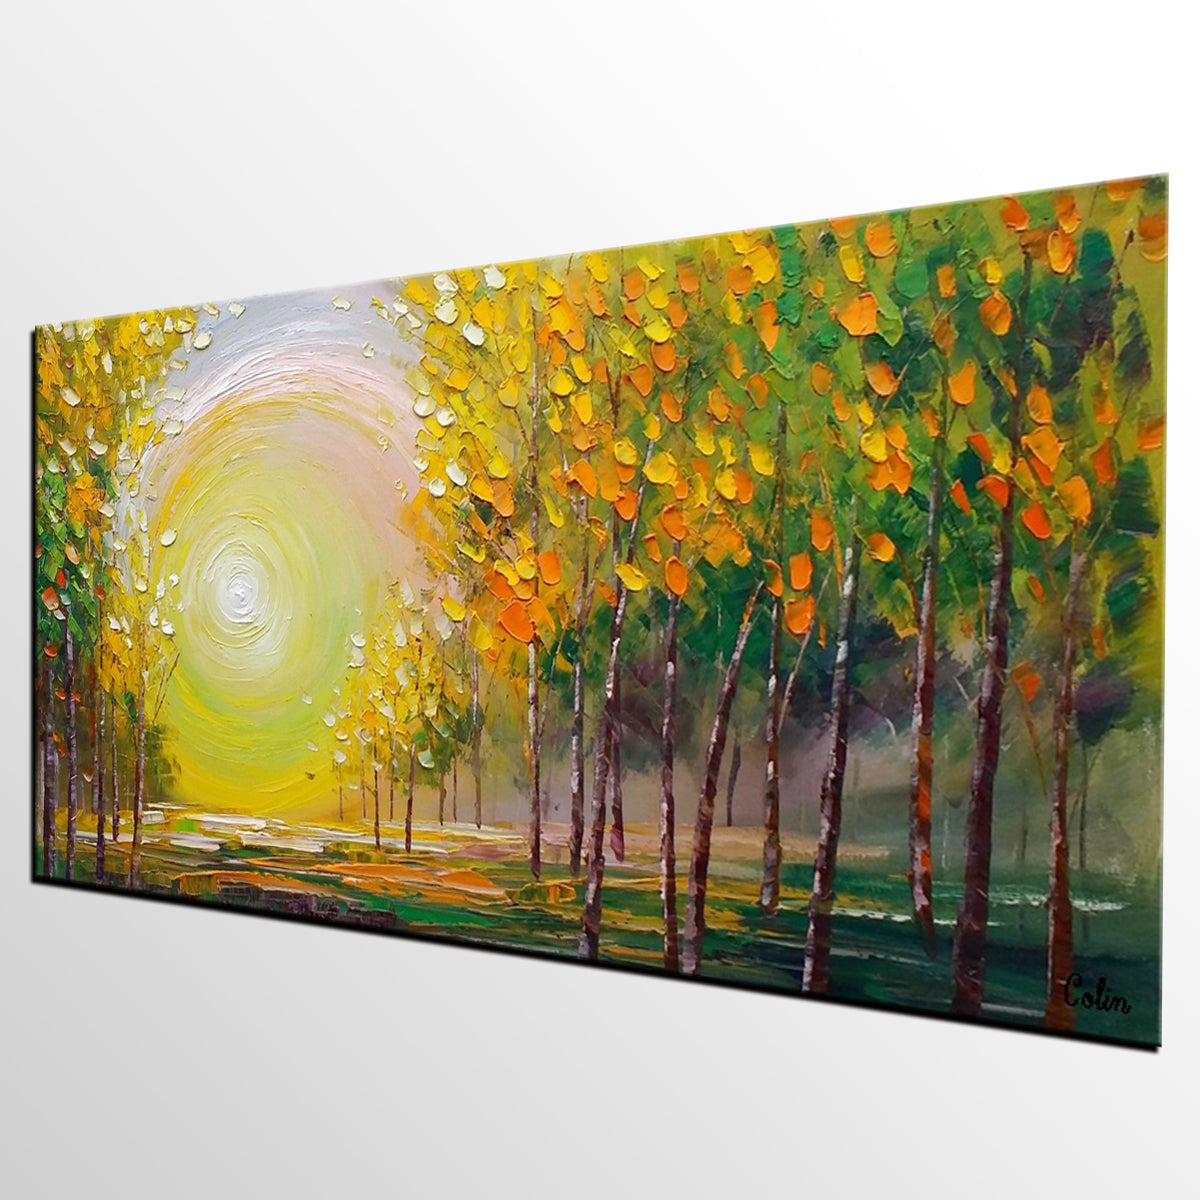 Oil painting living room wall art landscape painting abstract paint artworkcanvas for Oil painting for living room